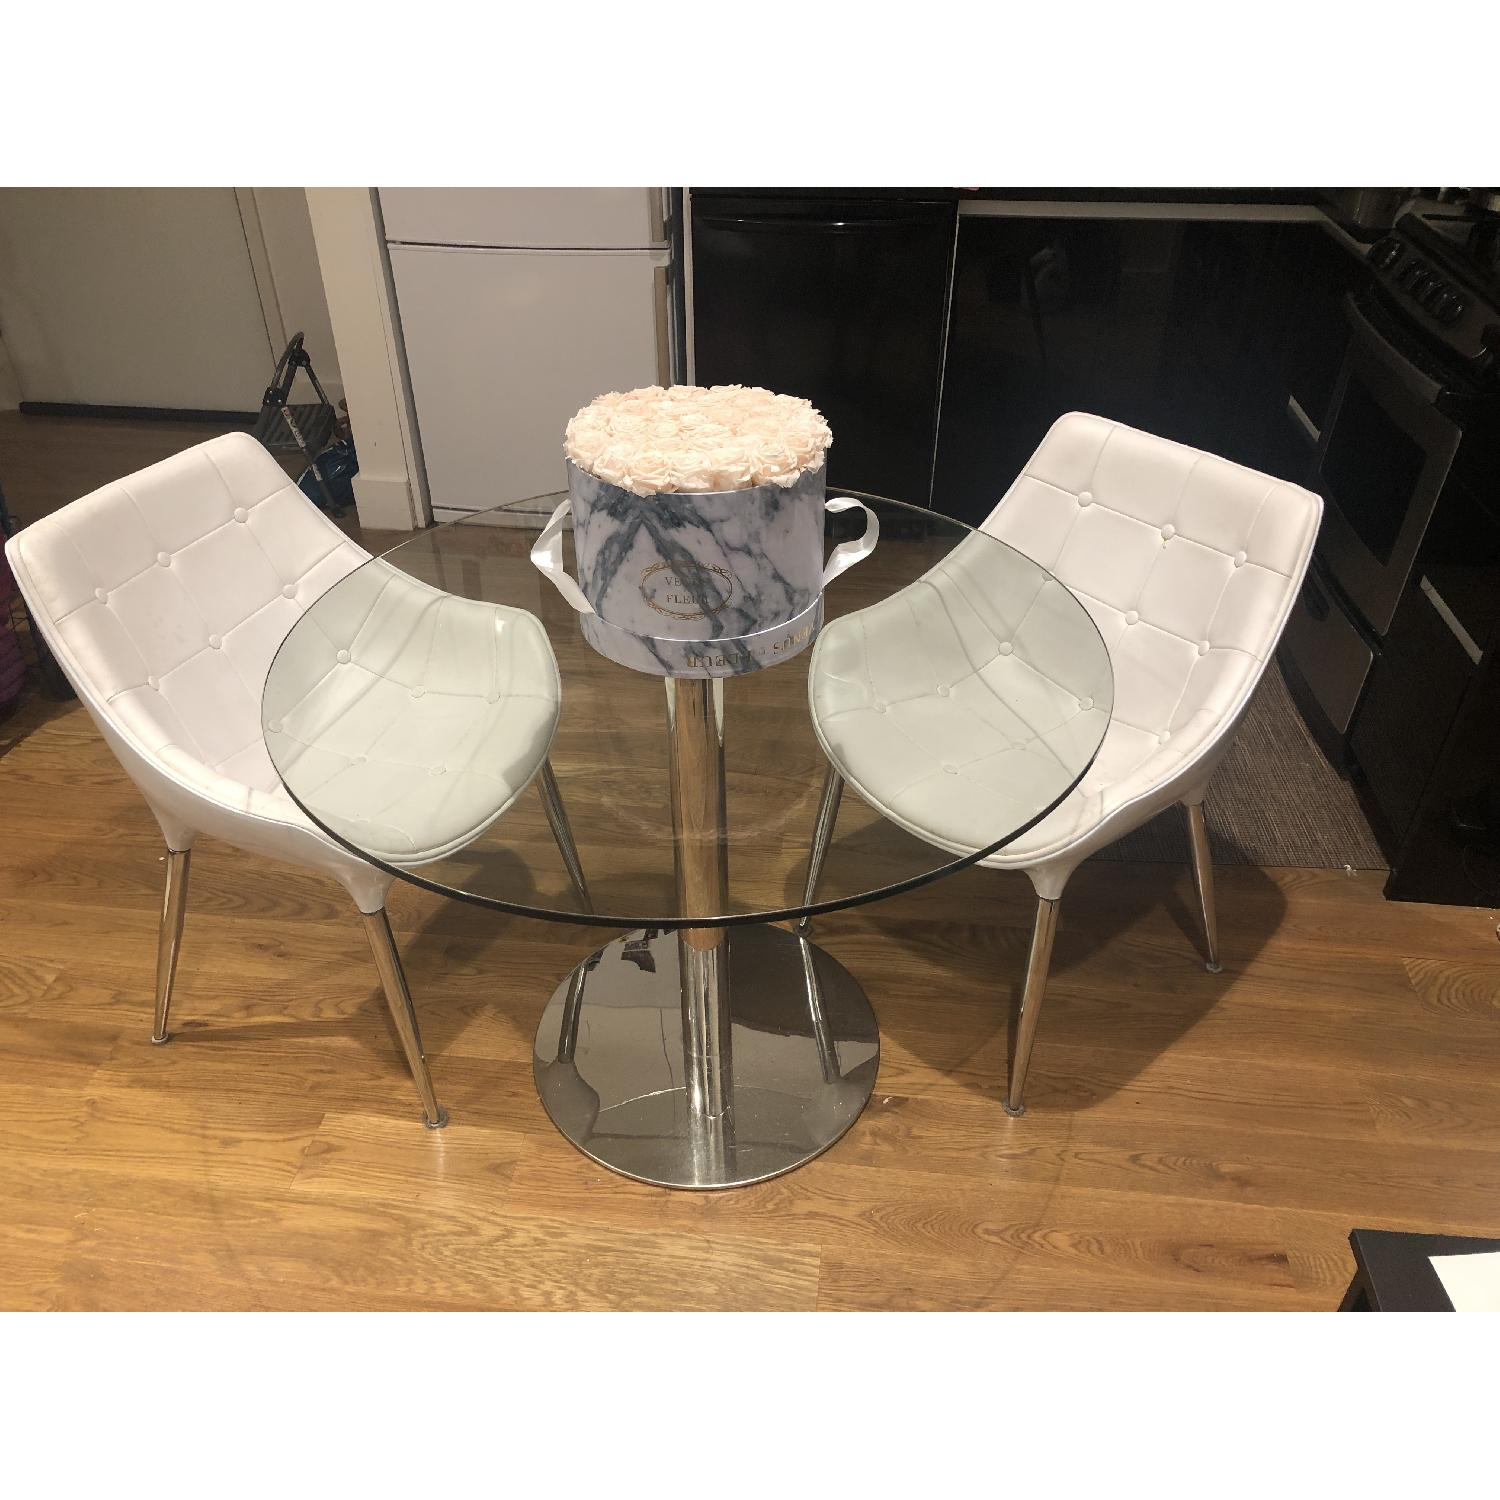 Modani Eve Dining Table w/ 2 Chairs - image-1